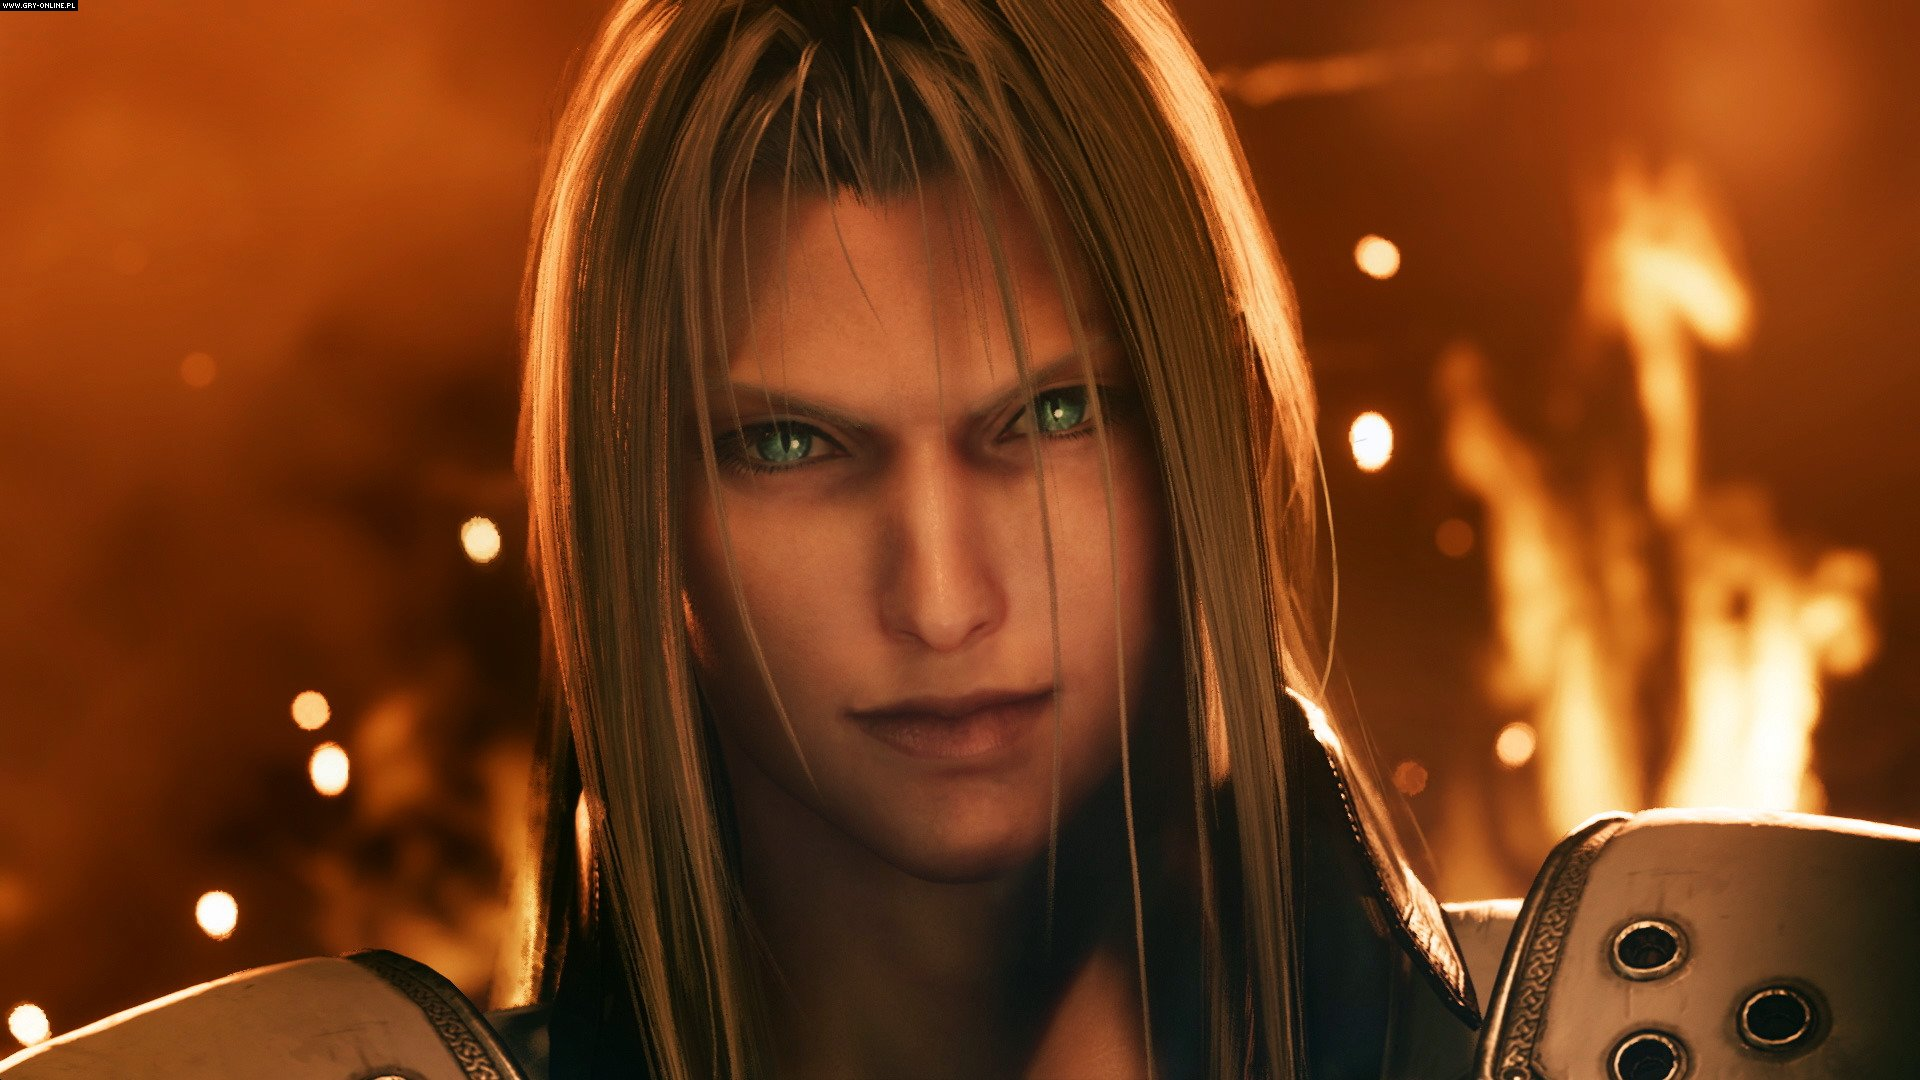 Final Fantasy VII Remake PS4 Games Image 59/71, Square-Enix / Eidos